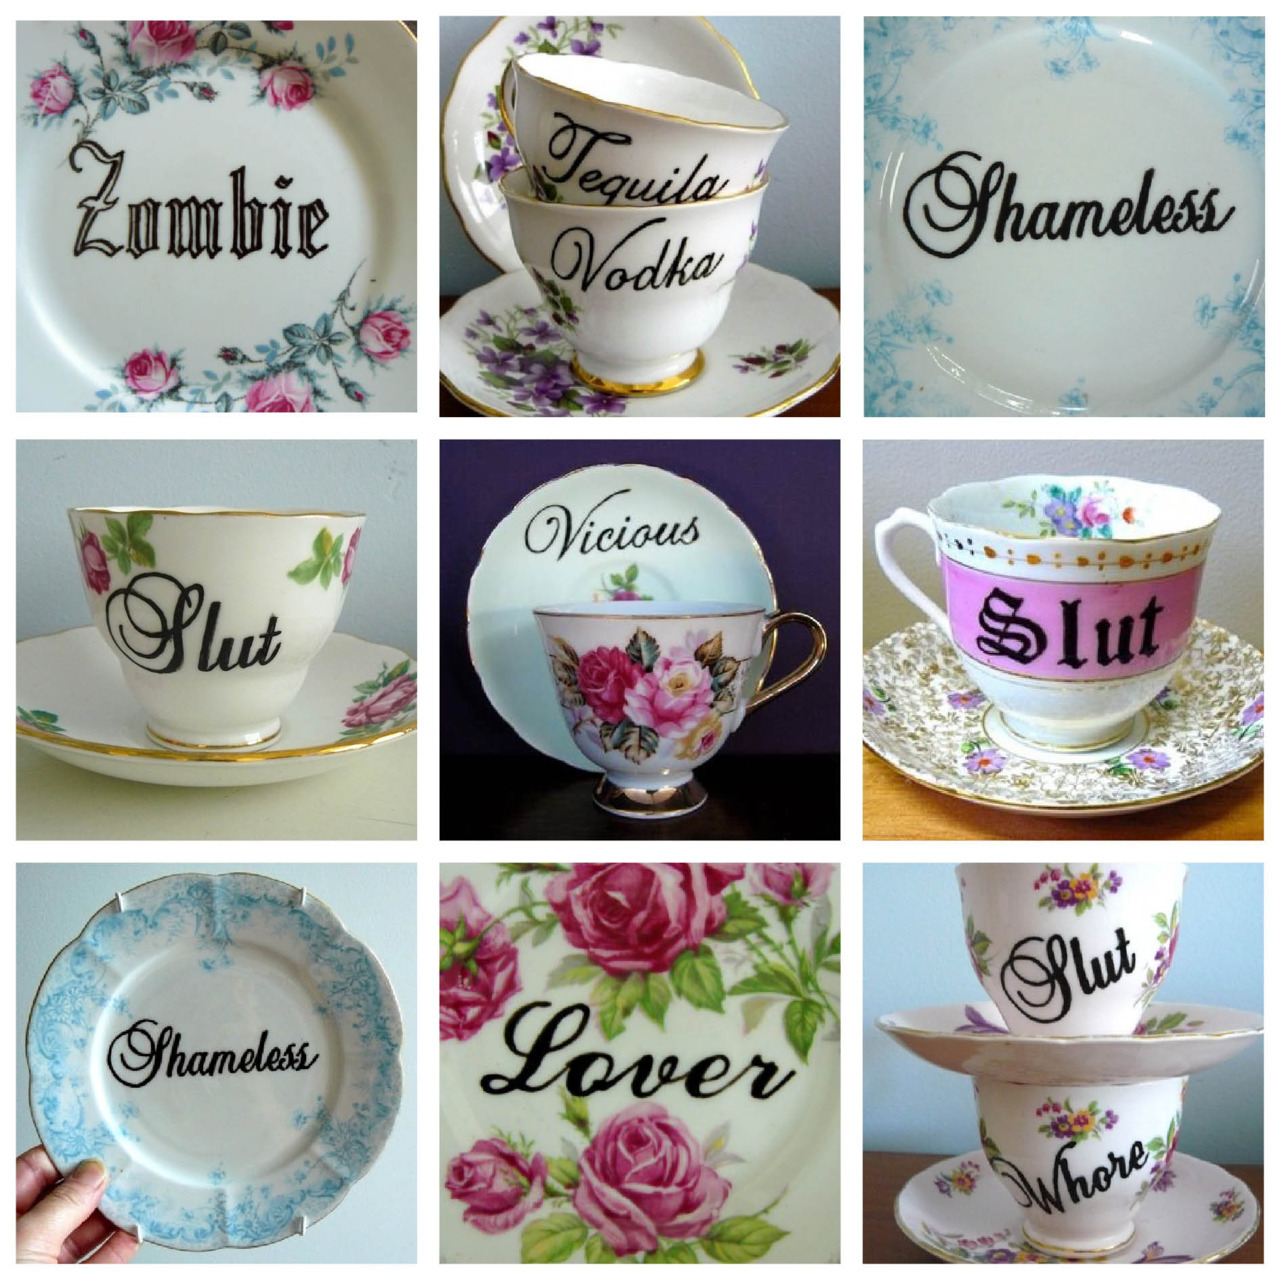 Vandalised Vintage ♡ Really inspired by these reworked teacups and plates by Trixie Delicious. I have a couple of plain white cups to practise on, then going to try and create my own using some vintage teacups I found in a charity shop!